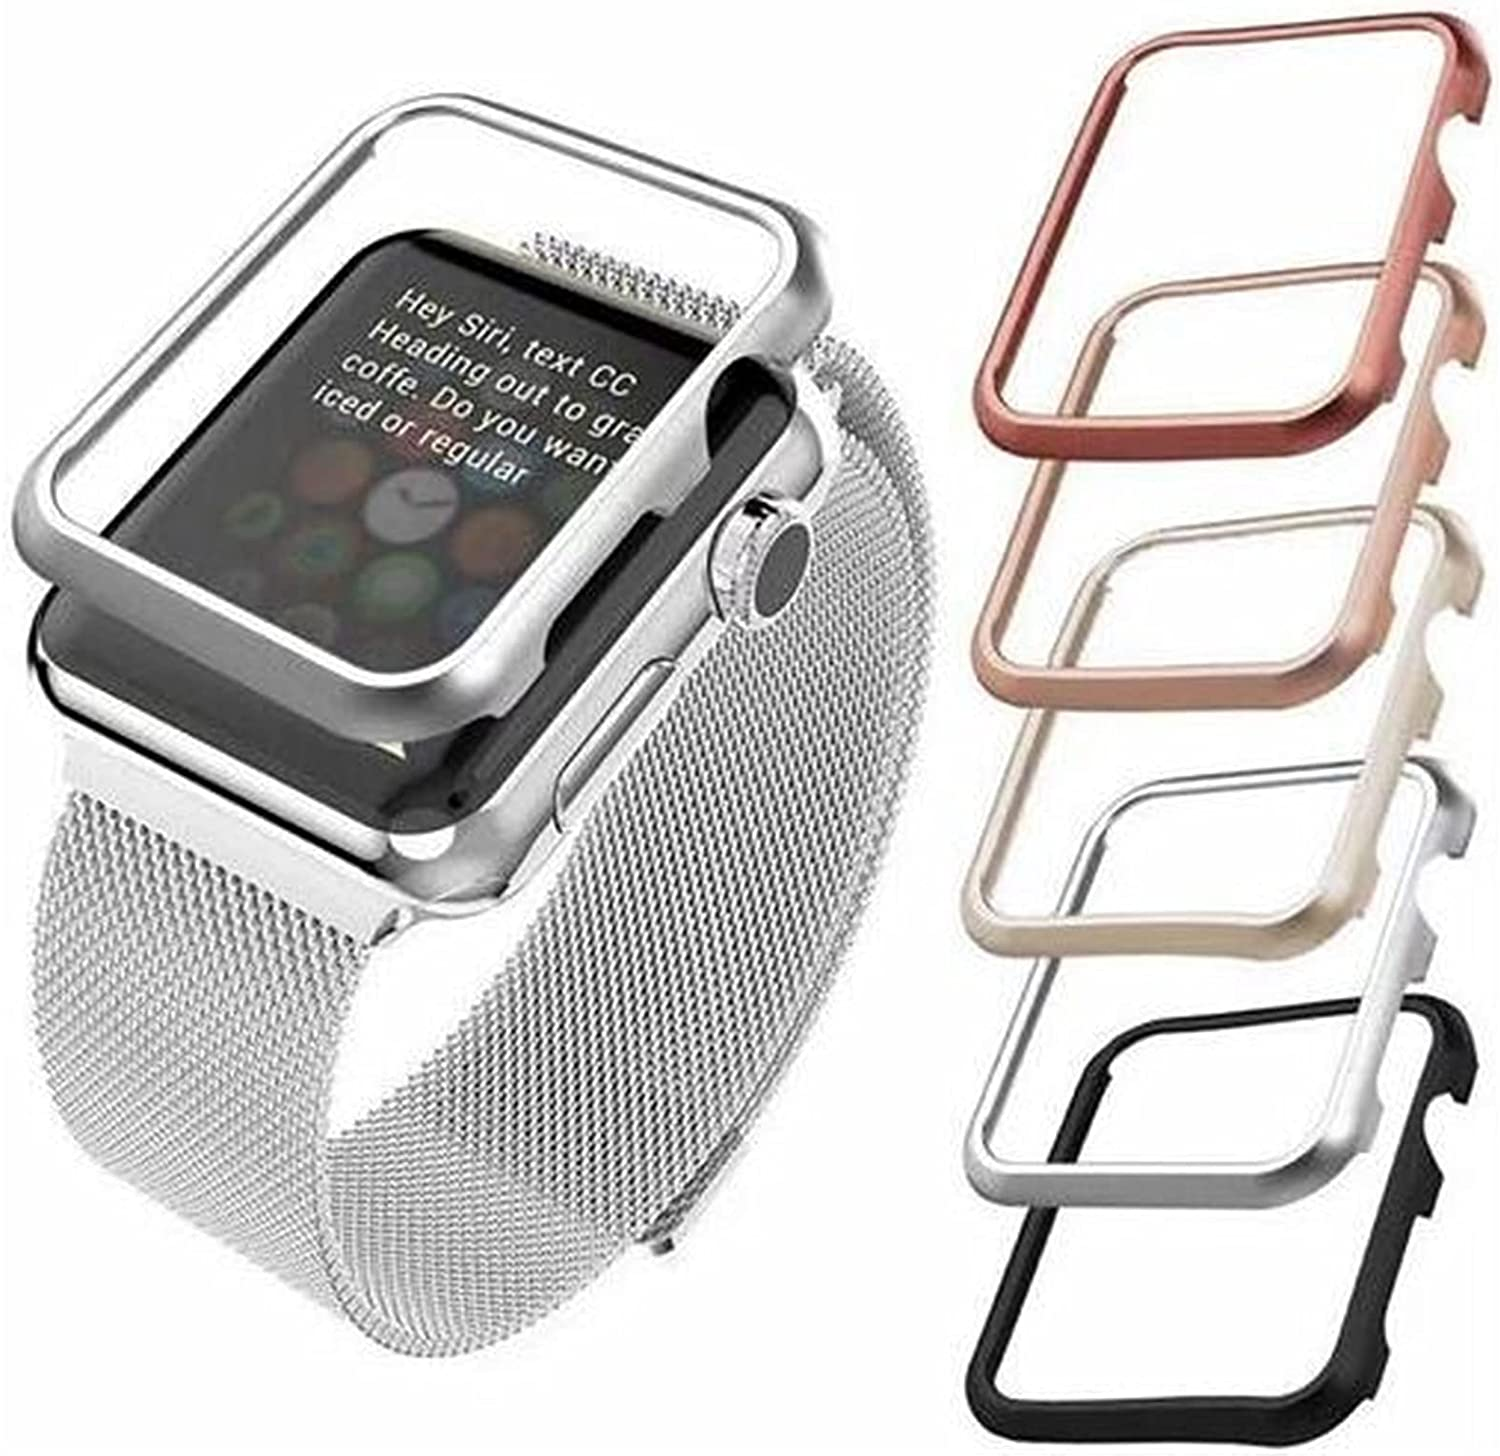 JJBFAC Case Cover for Watch Band Daily bargain sale 40mm free shipping 42mm 38mm S 44mm